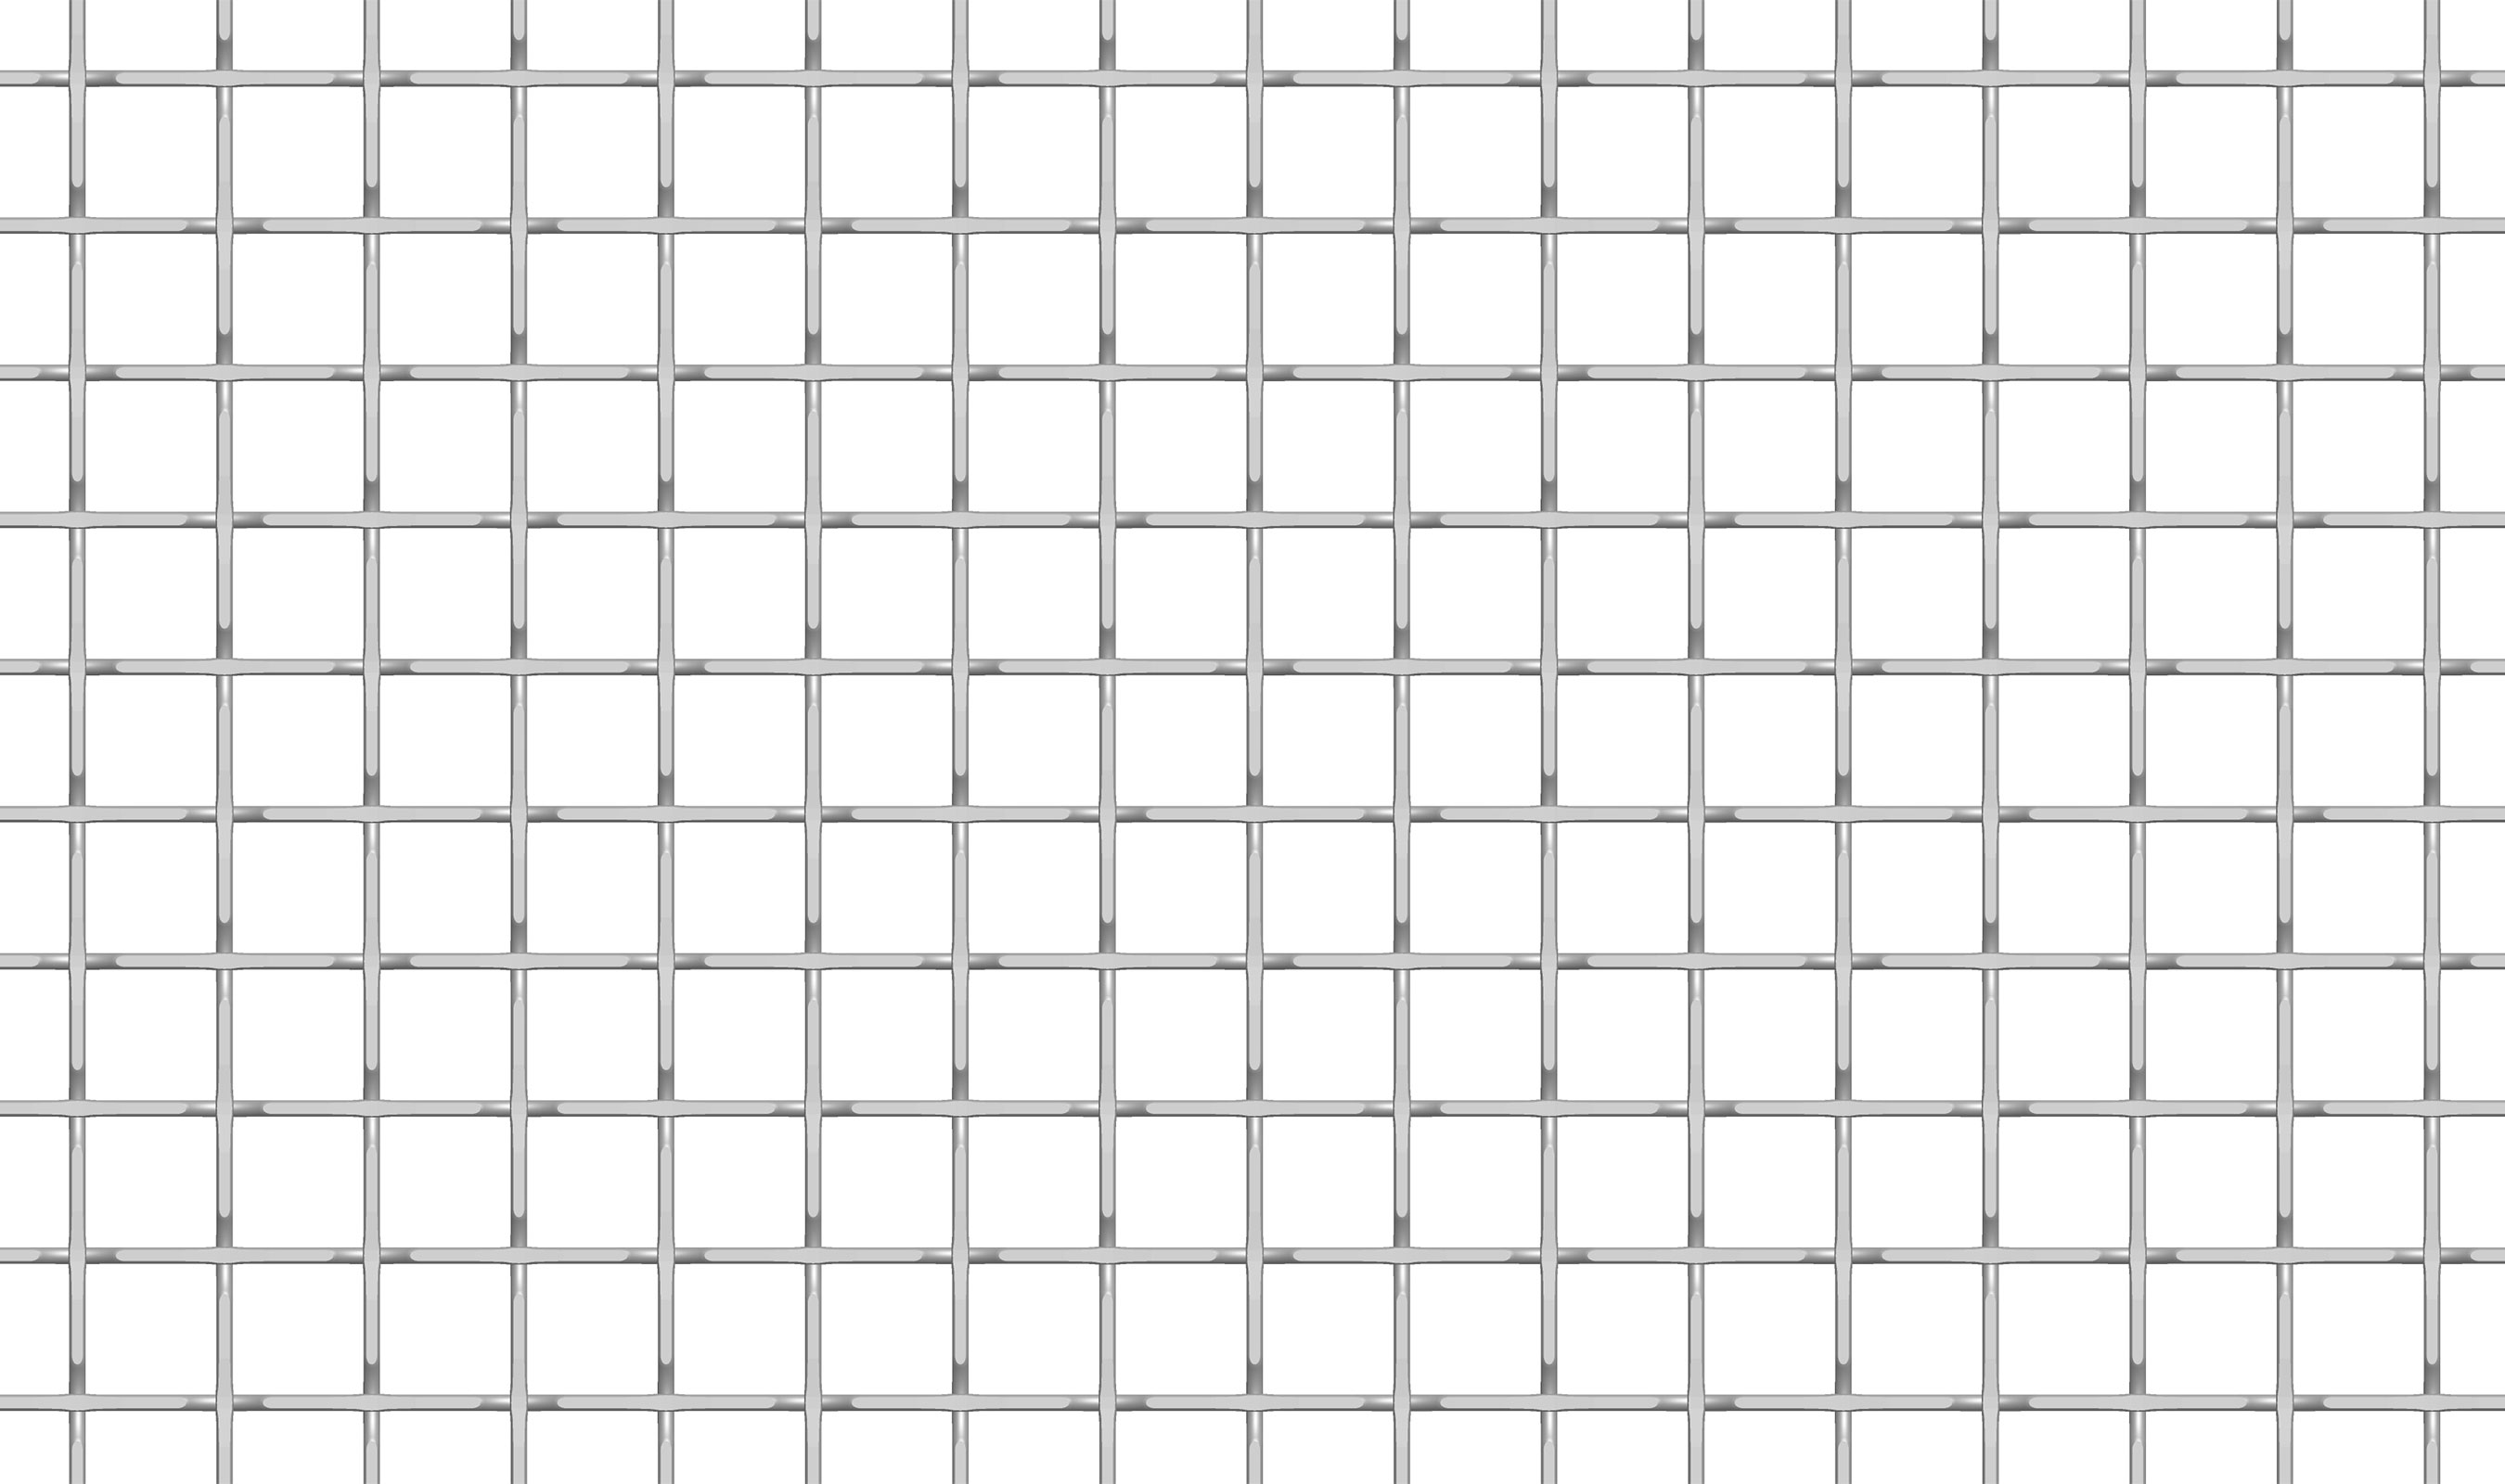 F-61 flat top woven wire mesh